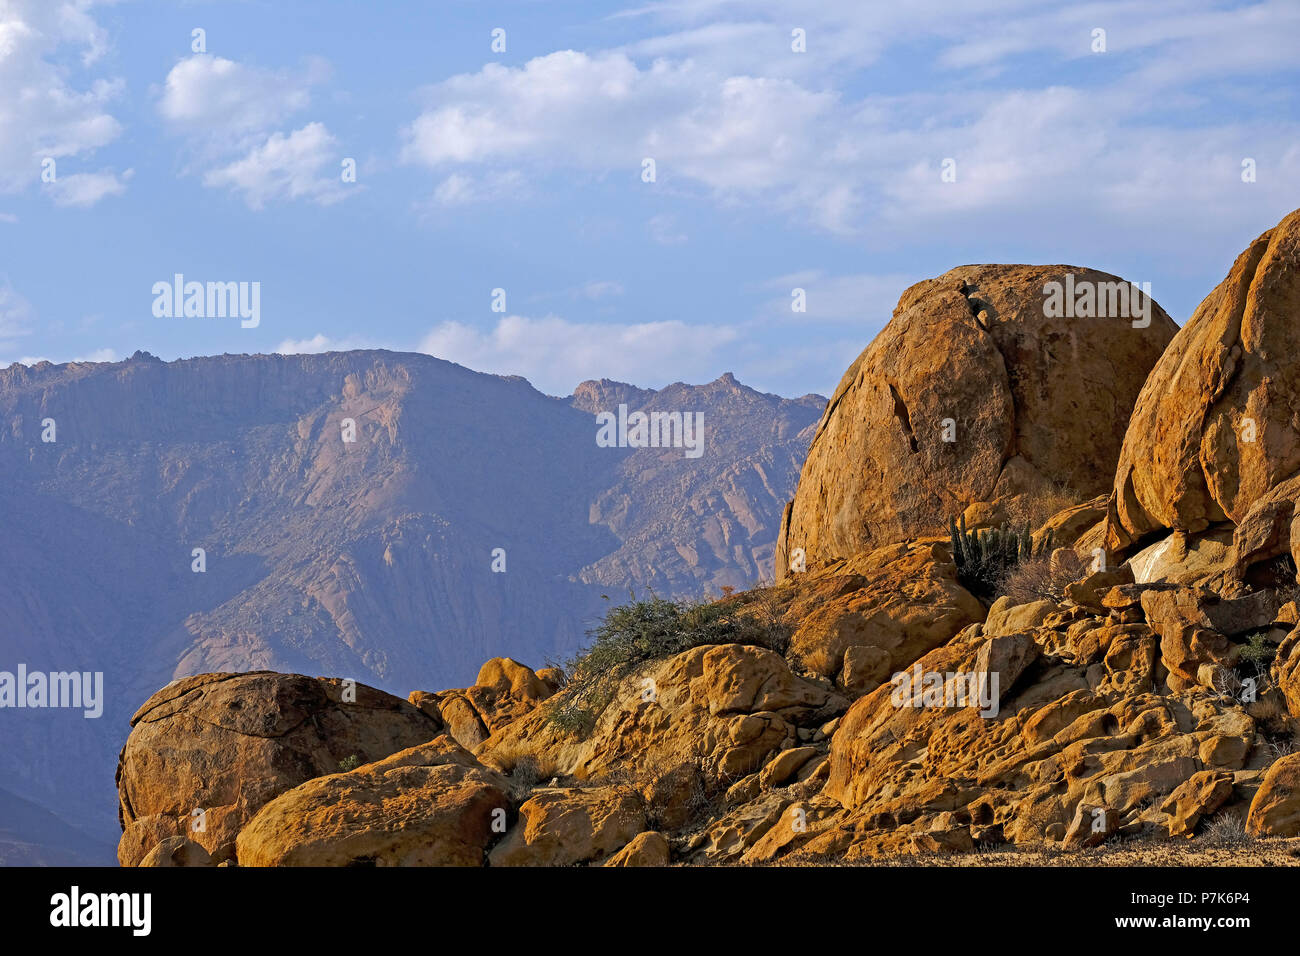 wild eroded granite rocks with slip rock and sparse vegetation in the Brandberg area, Brandberg in the background, in Namibia, Damaraland - Stock Image